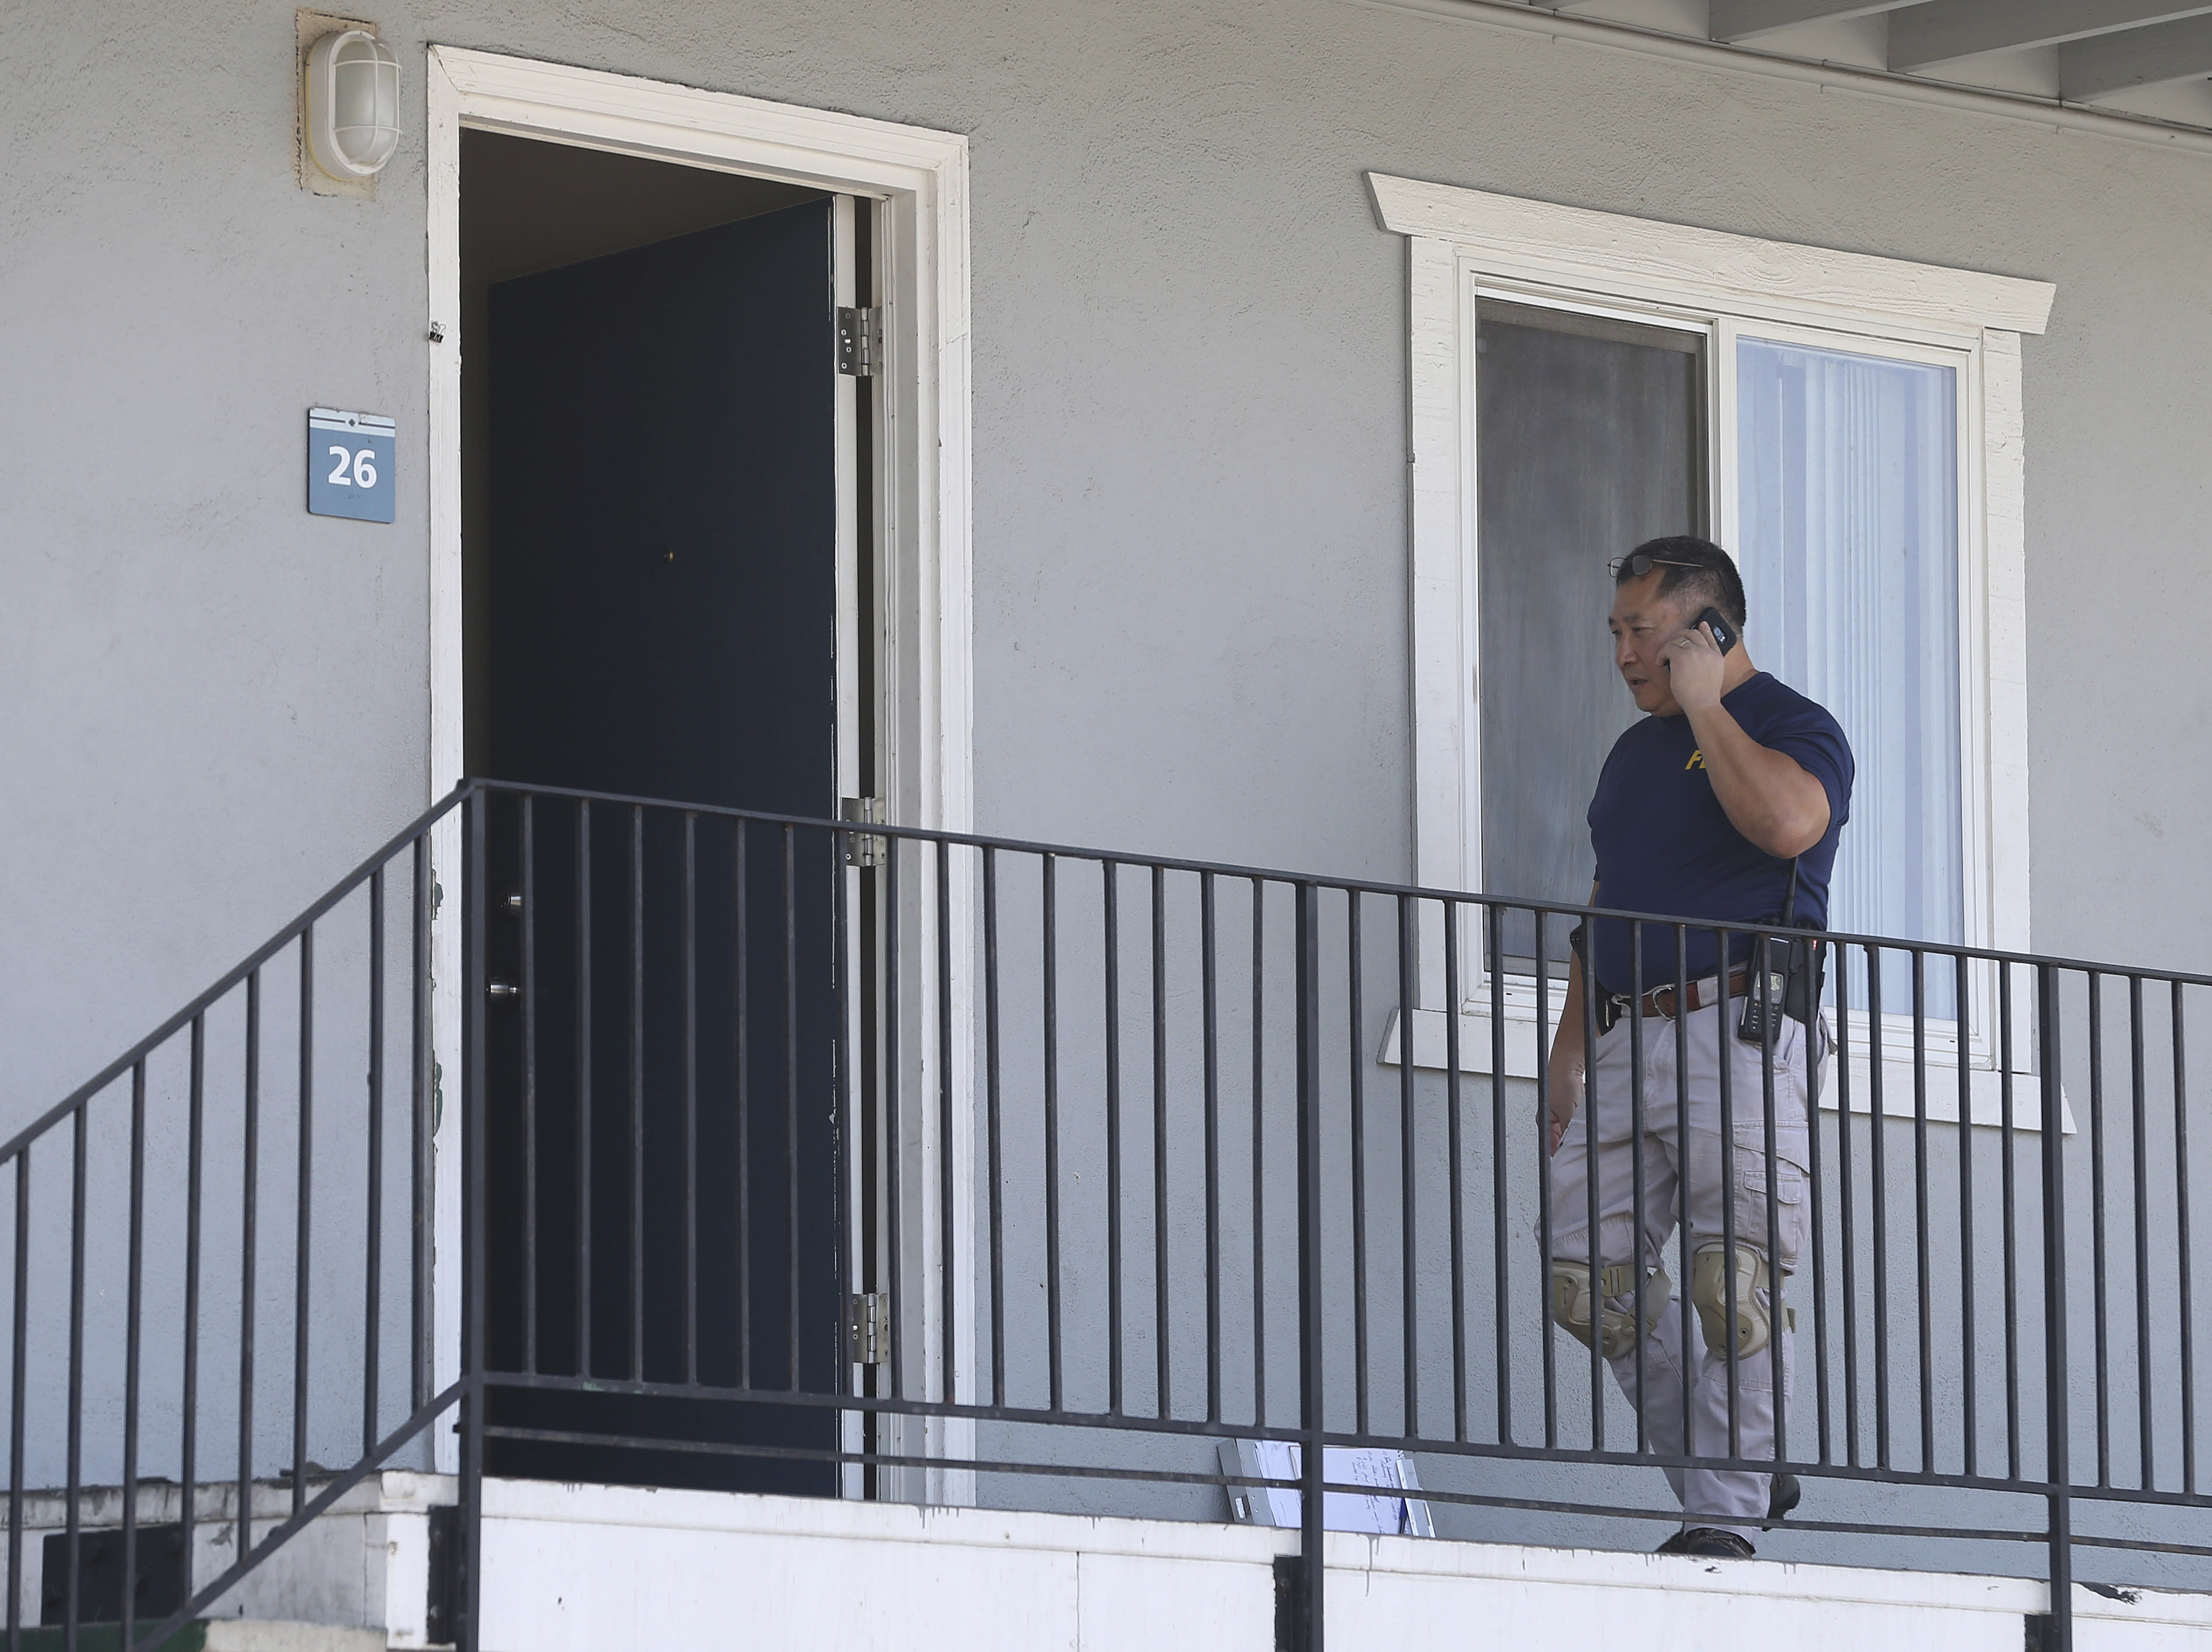 A federal agent makes a call outside the apartment following the arrest of a 45-year-old Iraqi refugee, Omar Ameen, Wednesday, Aug. 15, 2018, in Sacramento, Calif. Ameen was arrested on a warrant alleging that he killed an Iraqi policeman in 2014 while serving with the Islamic State terror organization. (AP Photo/Rich Pedroncelli)